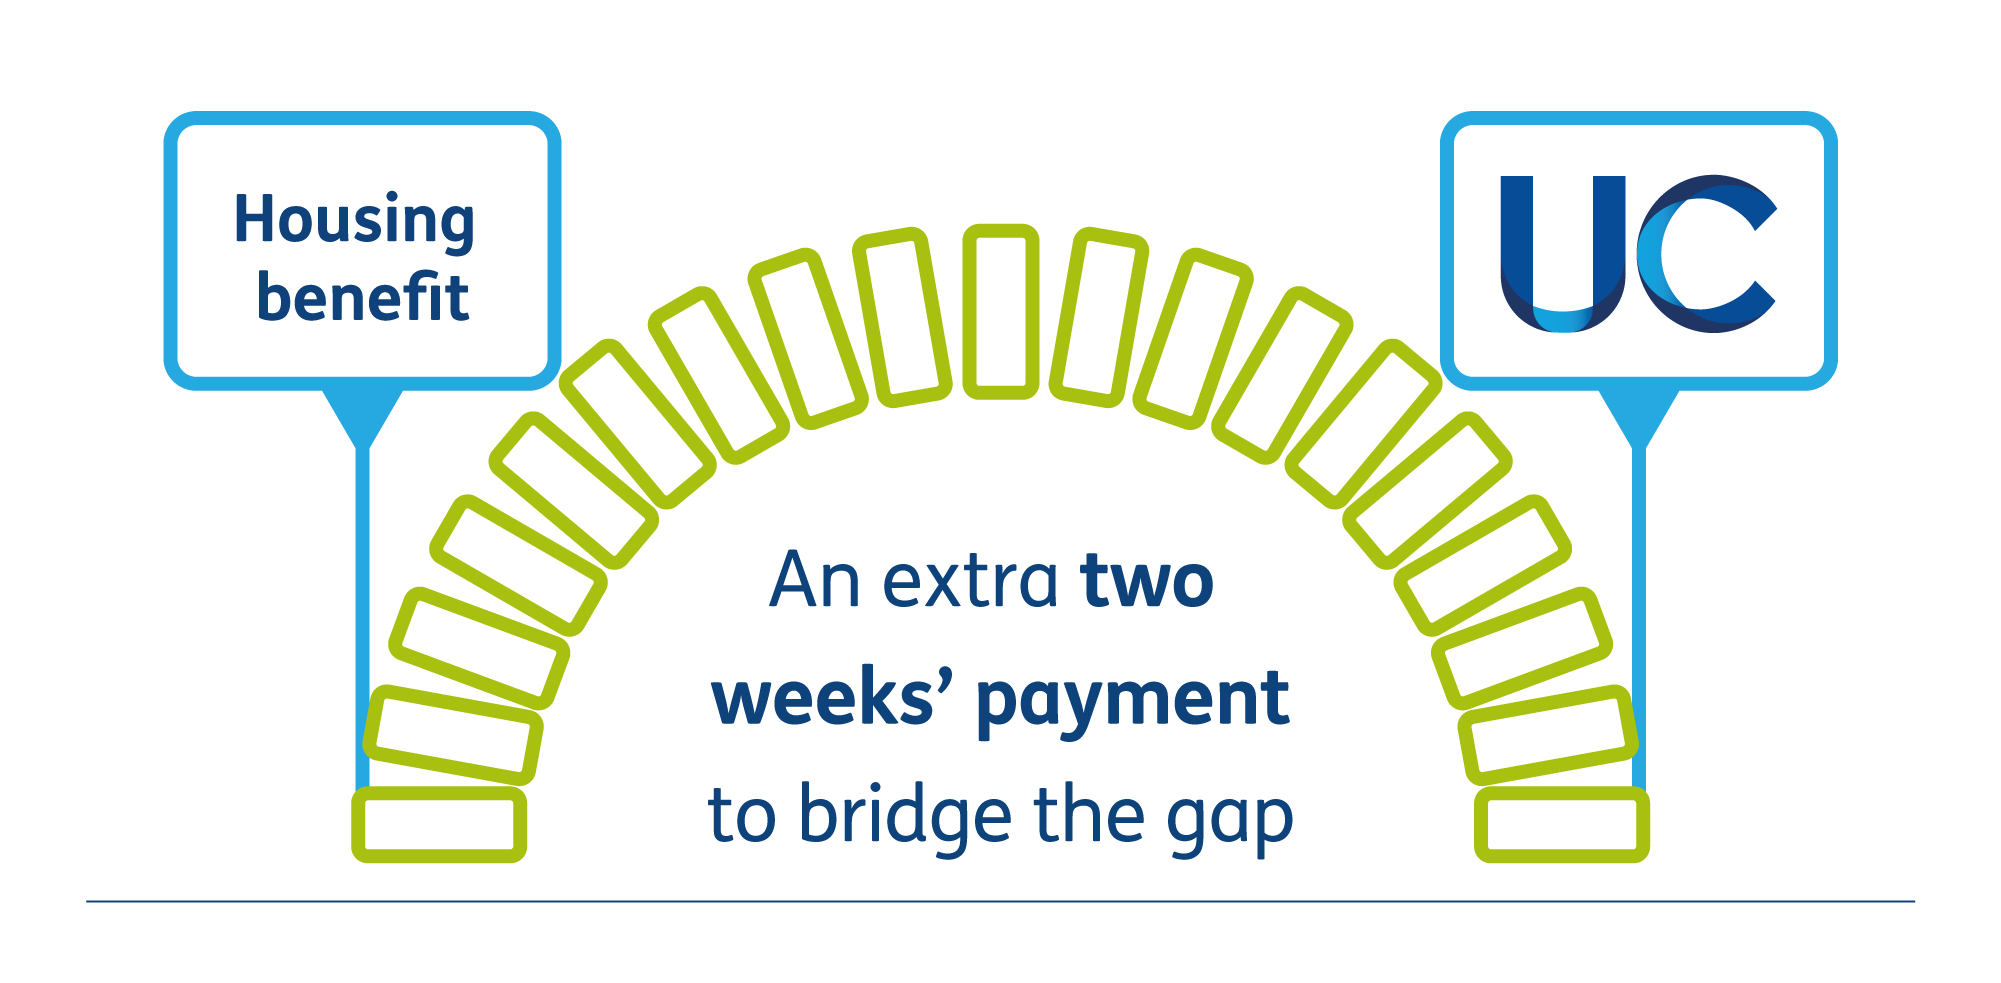 The transition gives two weeks' extra payment to bridge the gap.